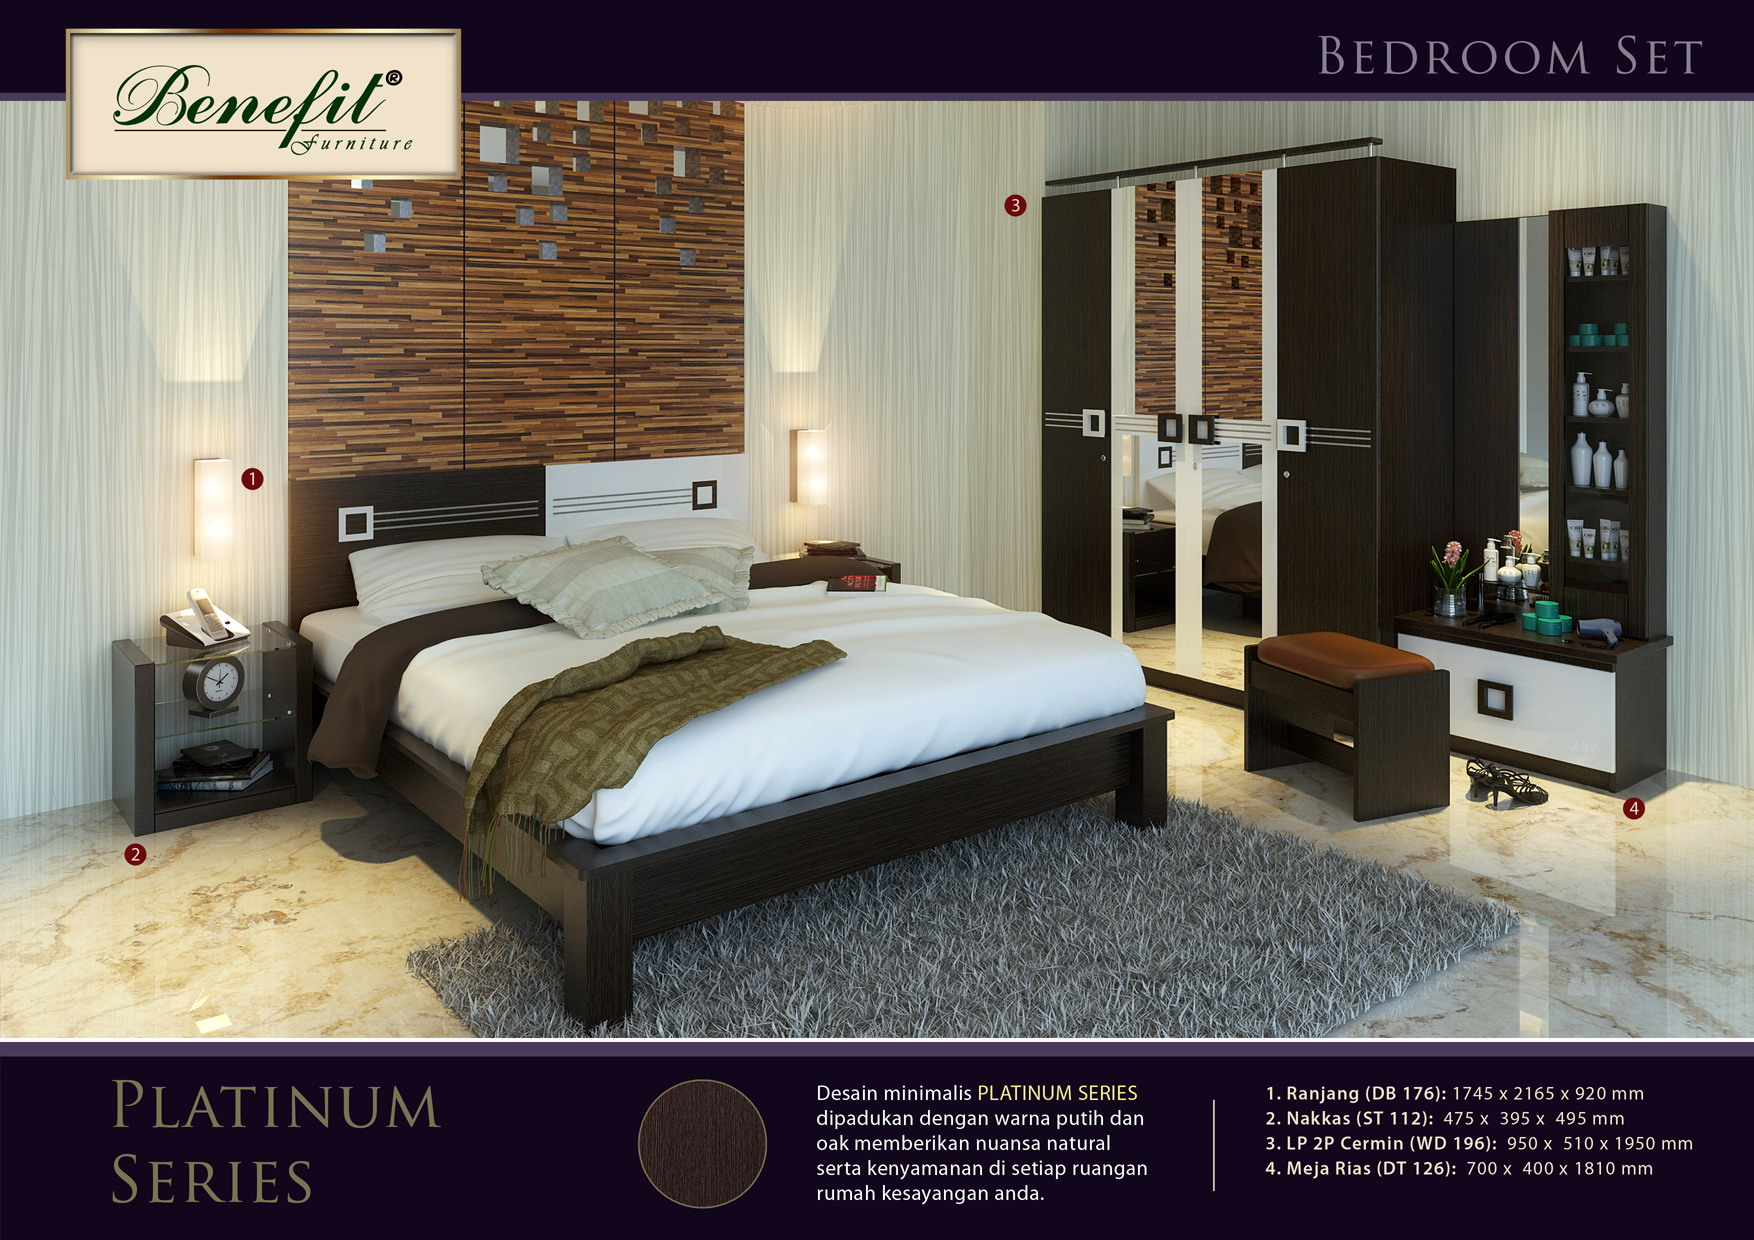 Kamar Set Platinum Series Benefit Furniture